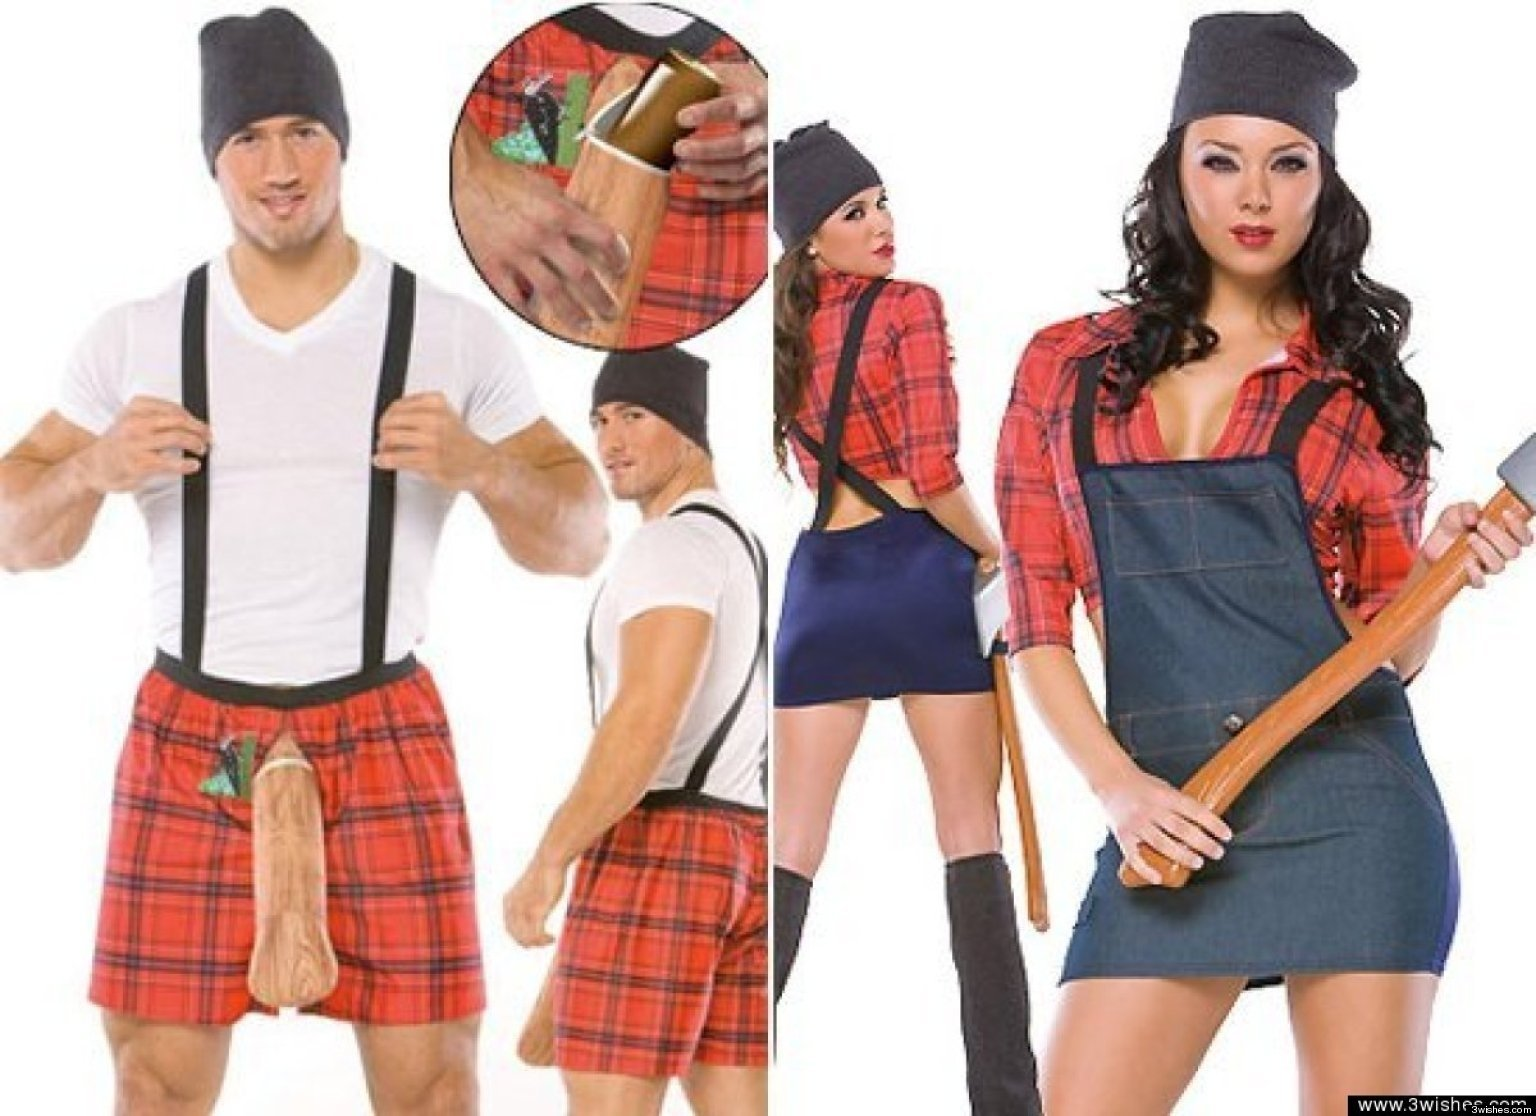 10 Ideal Halloween Costumes Ideas For Guys of funny men halloween costume ideas wallpaper amazing for men 2021